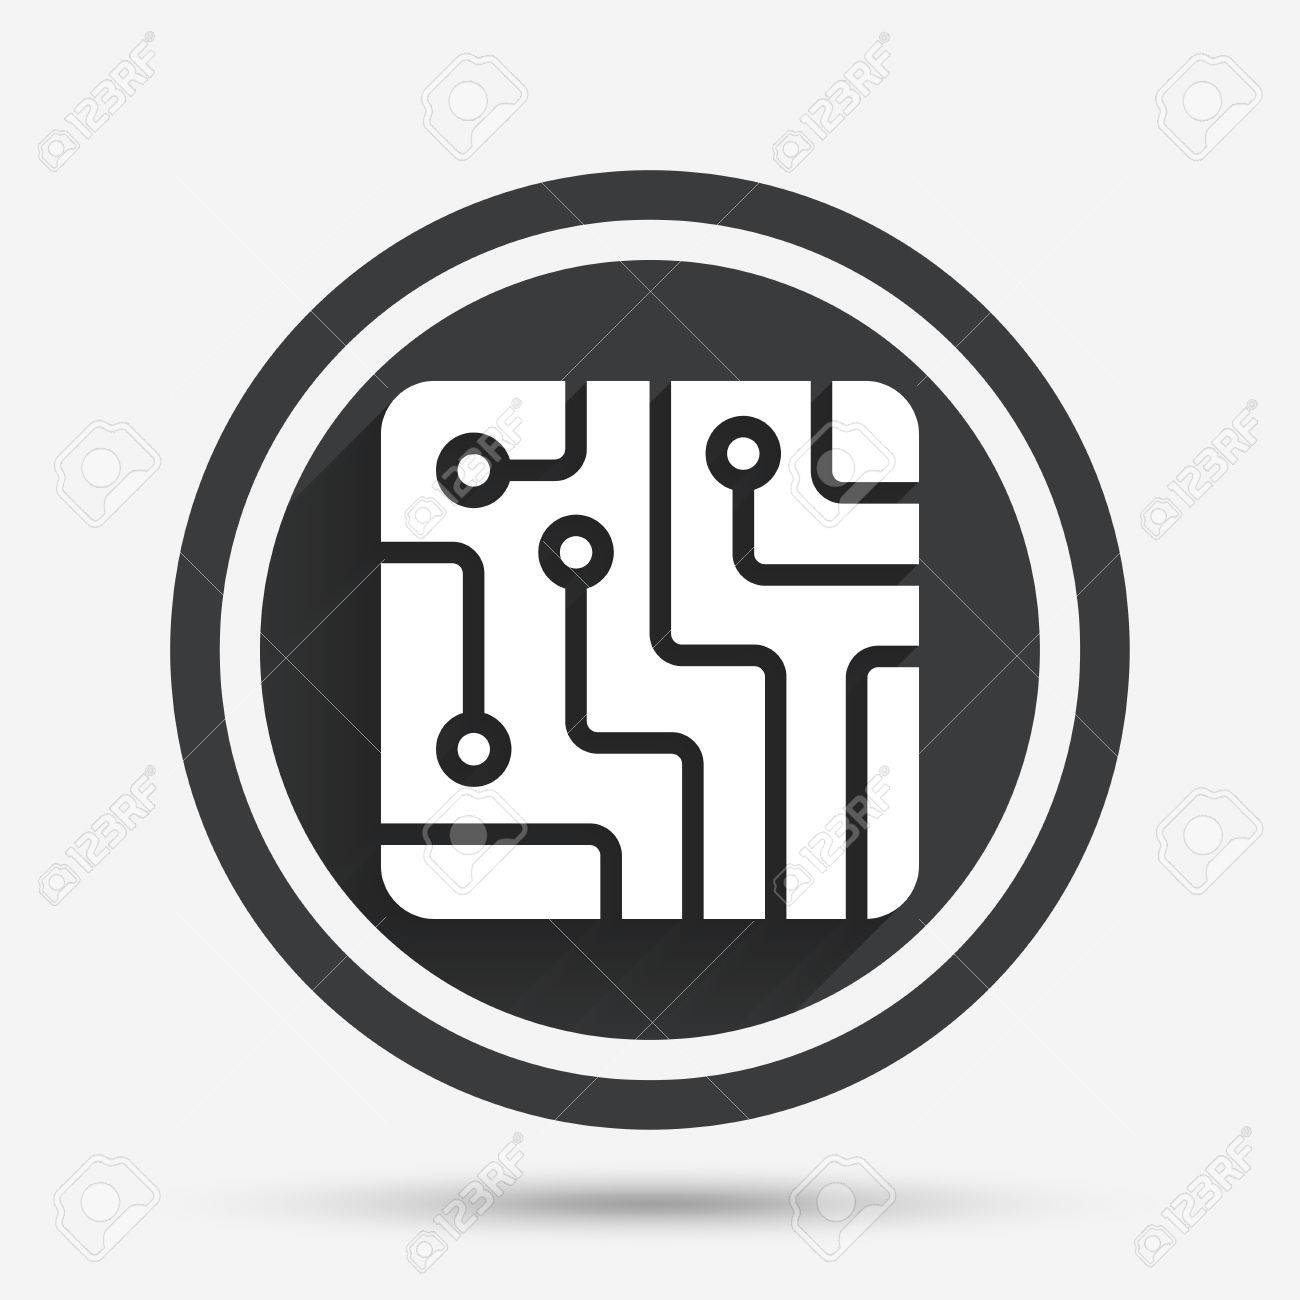 Circuit Board Sign Not Lossing Wiring Diagram Symbol For Led Icon Technology Scheme Square Circle Rh 123rf Com Symbols Signs Physical Education